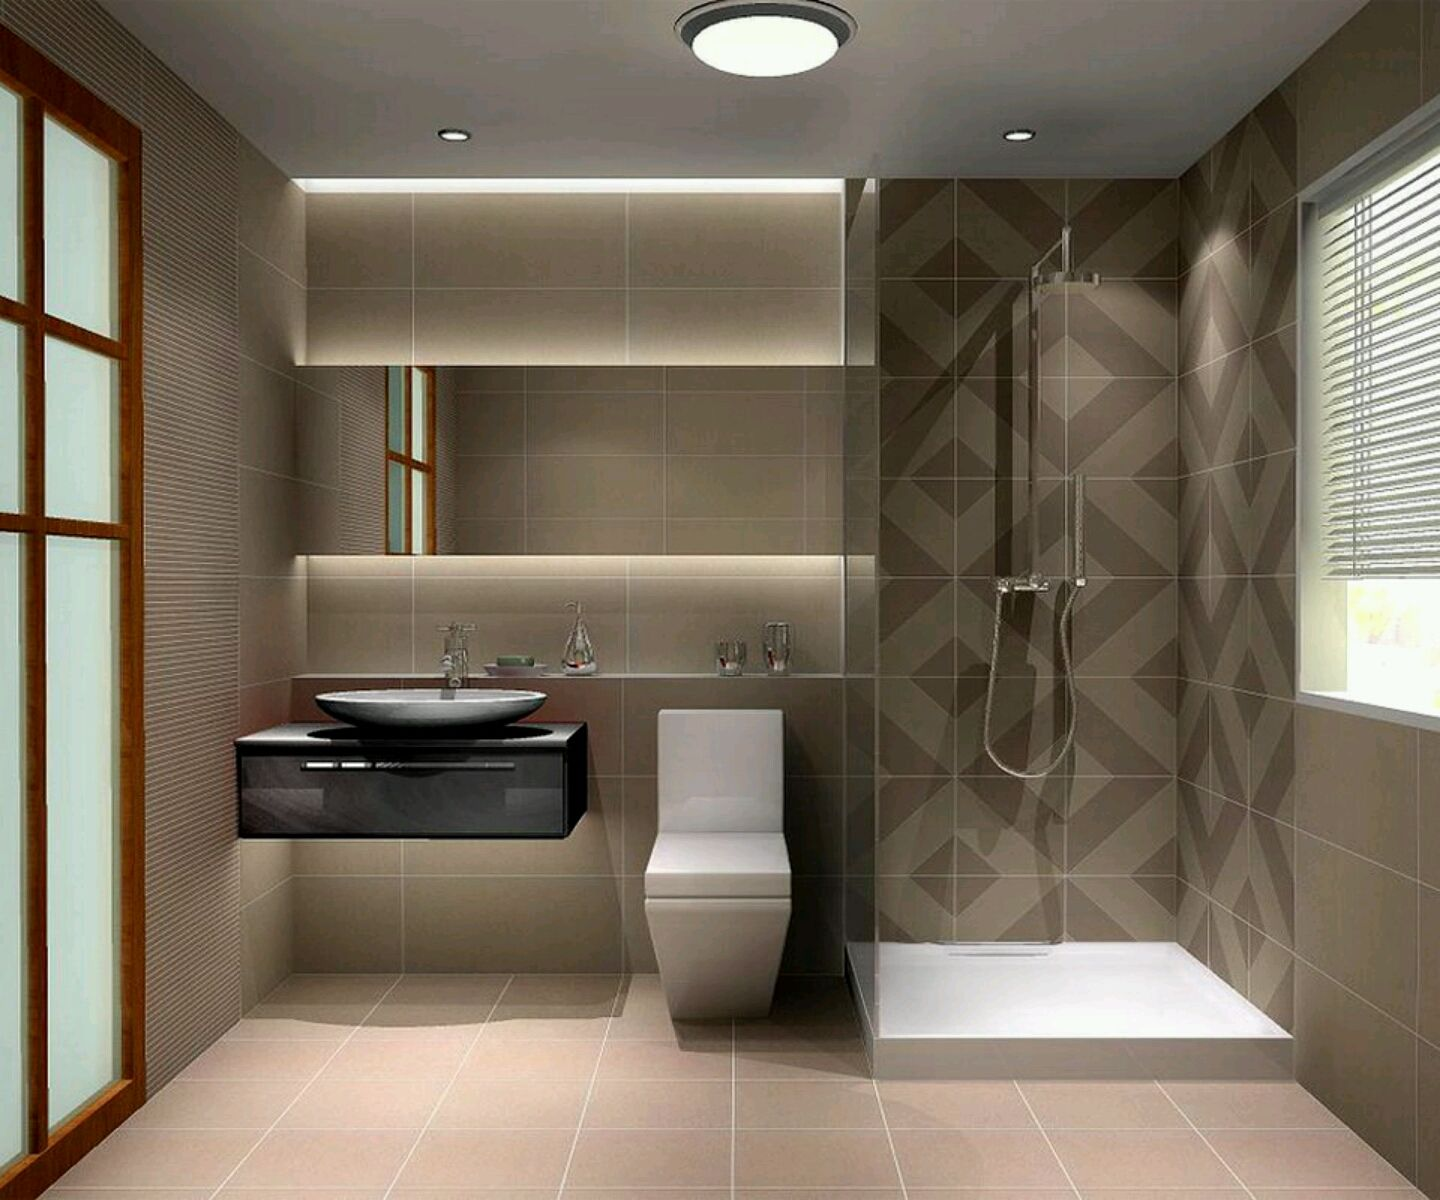 Modern bathroom decorations - Contemporary Bathroom Accessories Decoration